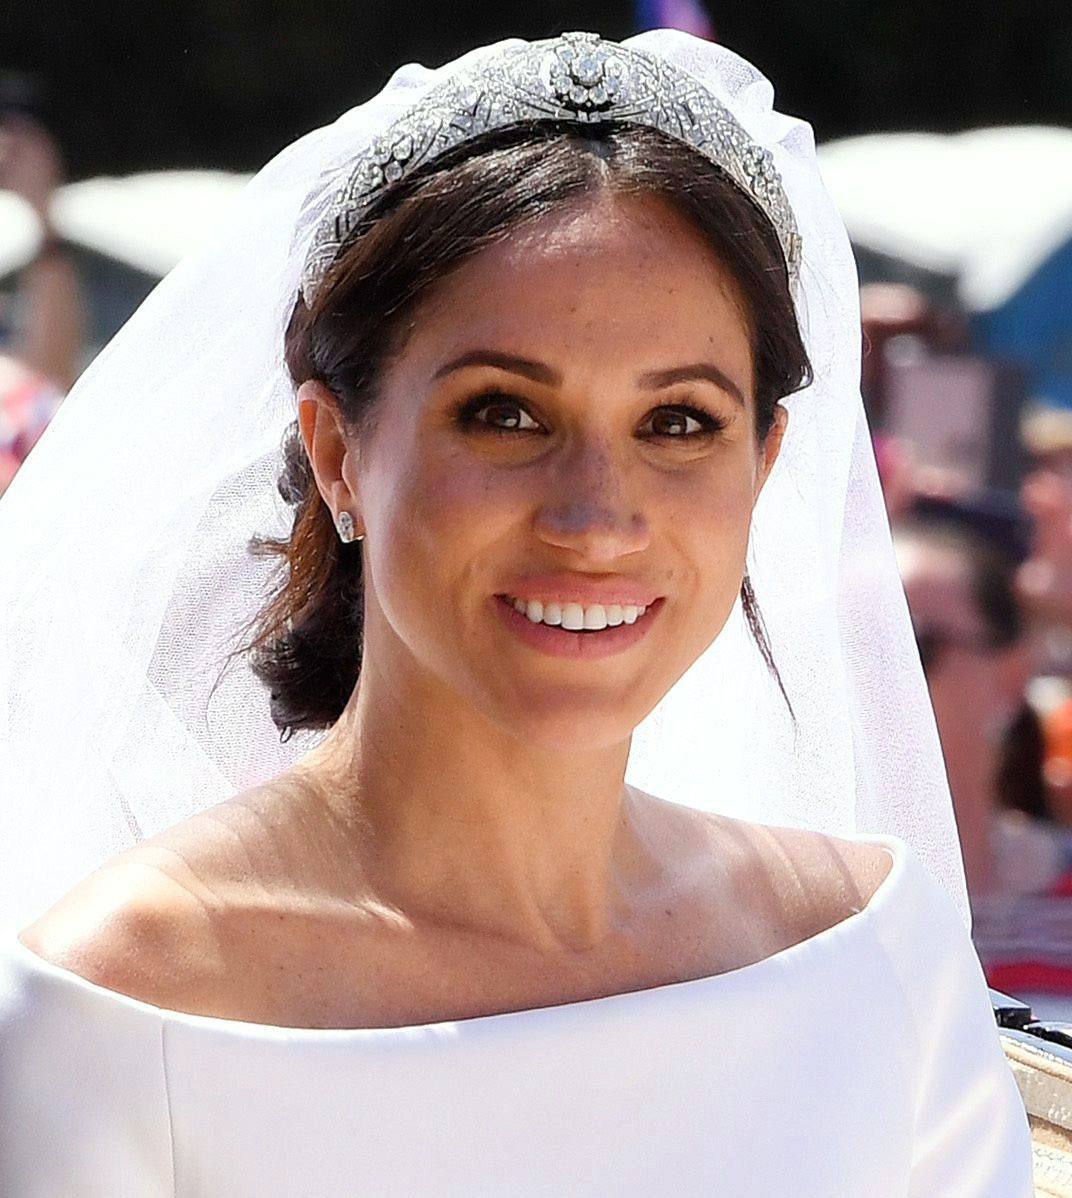 Meghan Markle's Freckles Are Inspiring People to Tattoo Them on TheirFaces